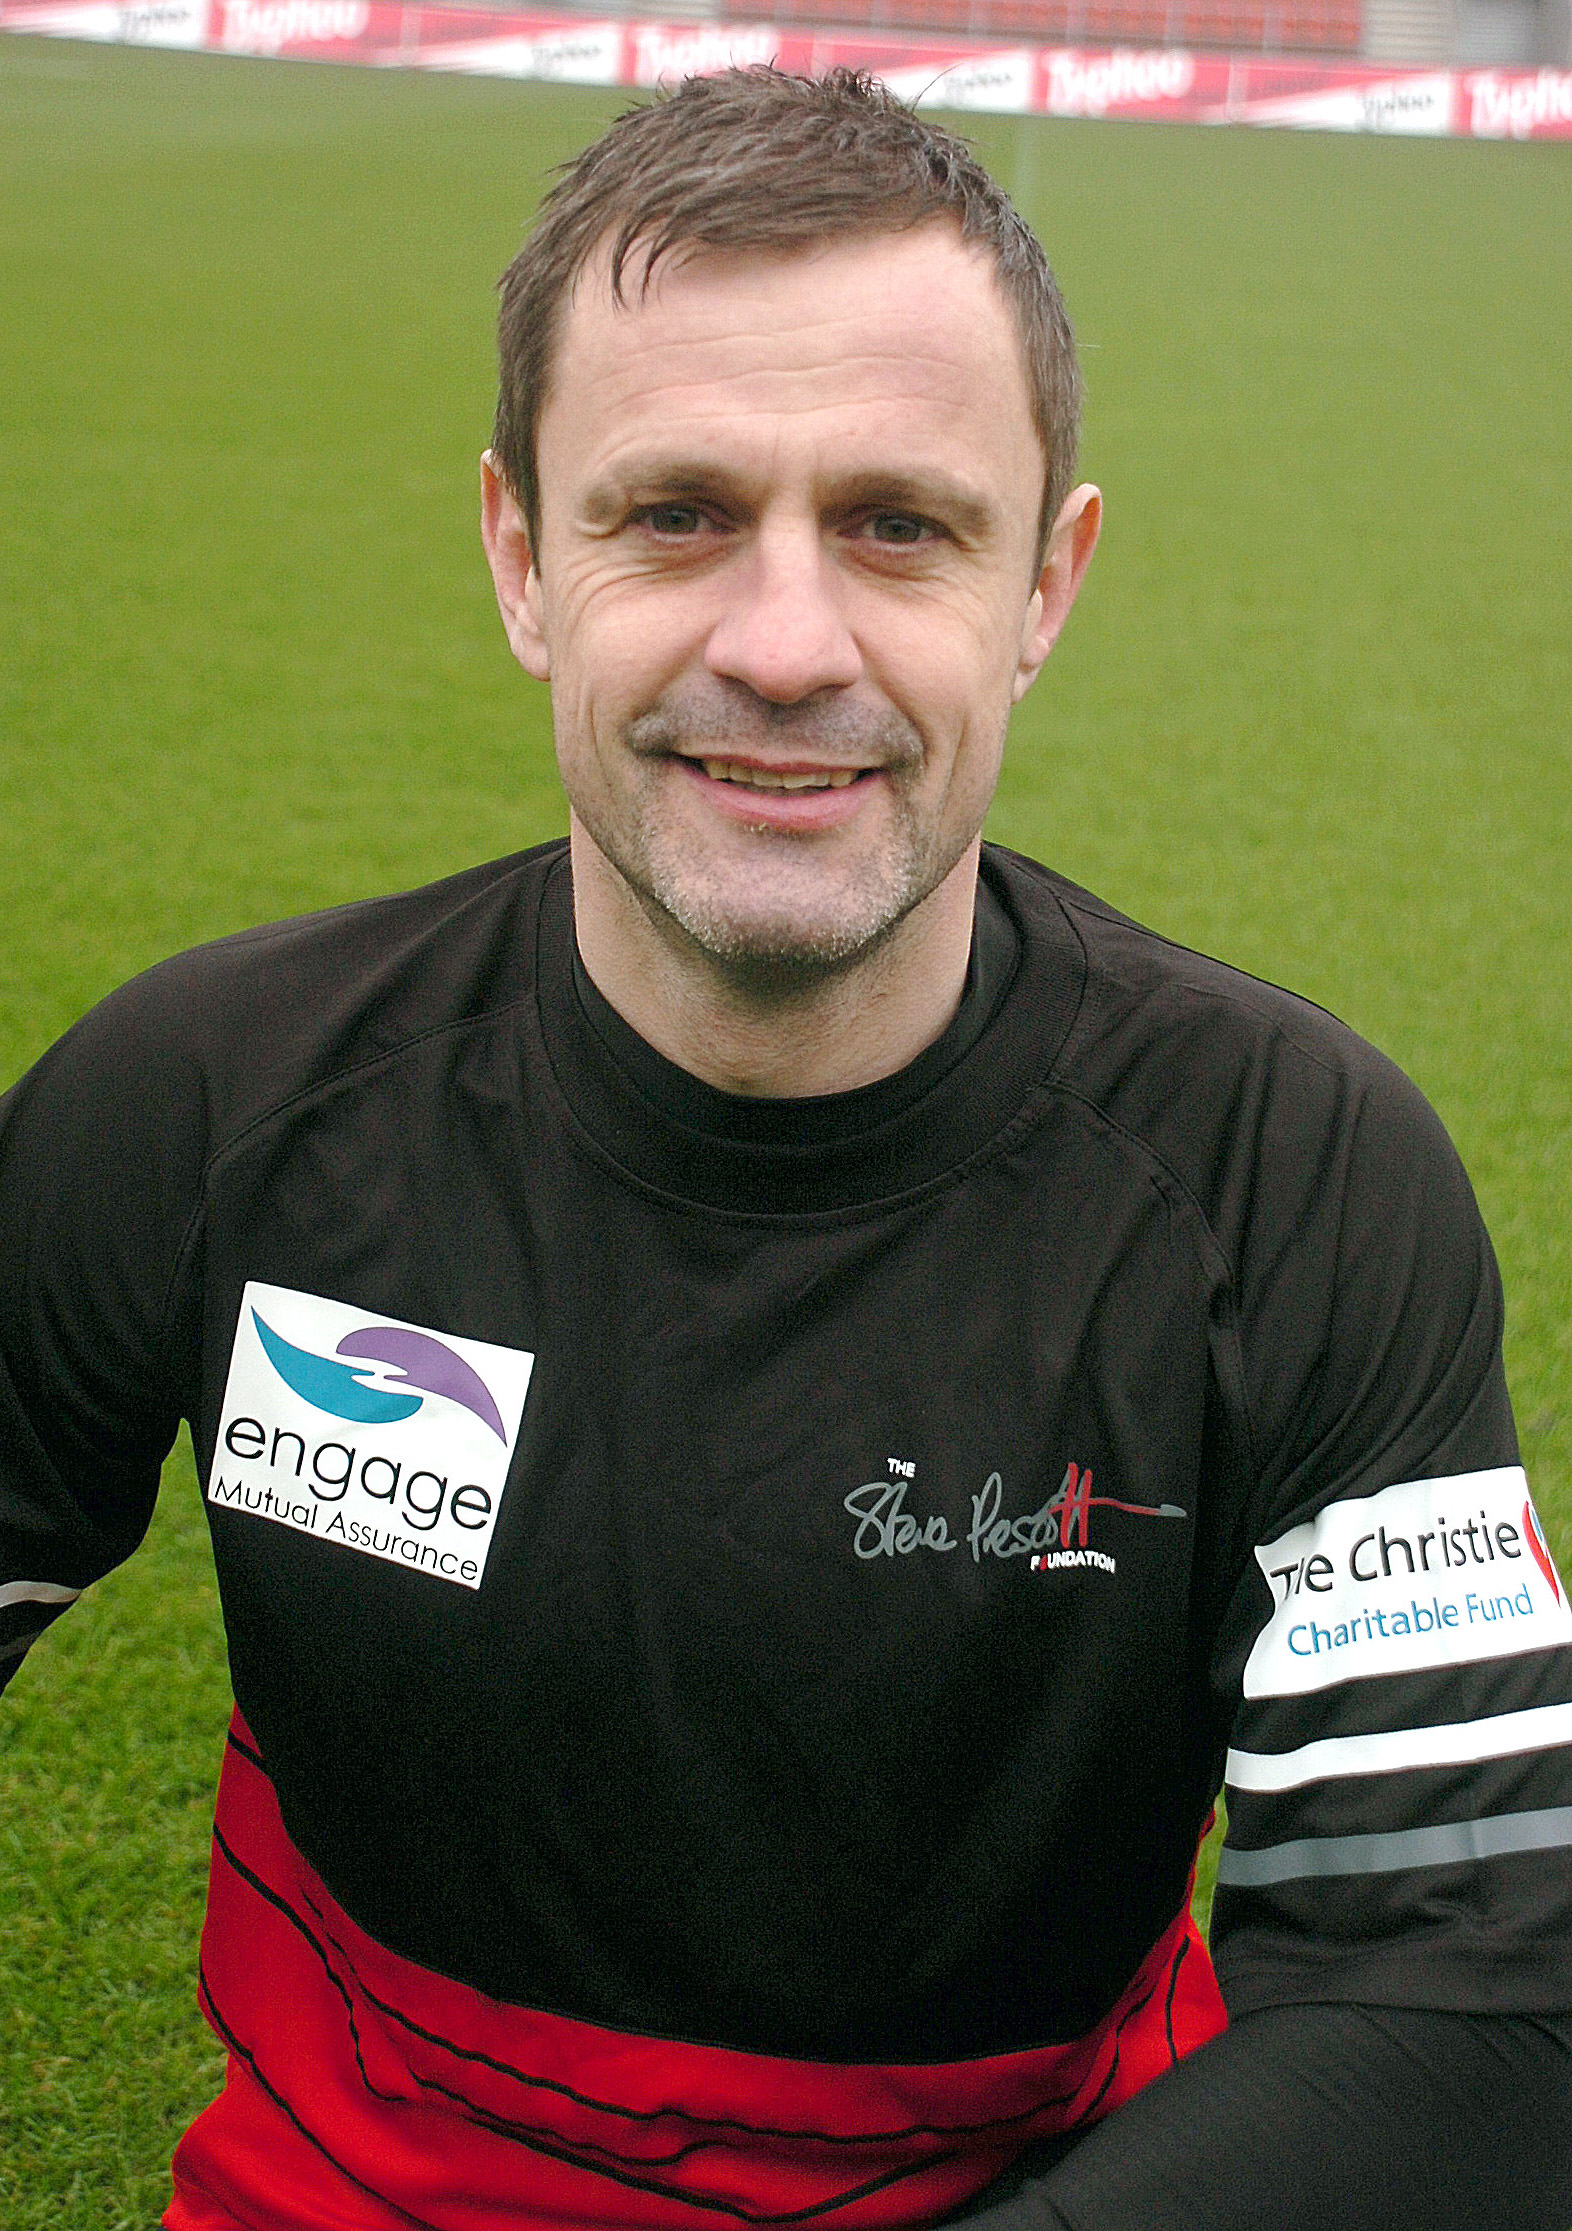 Former English international rugby league star Steve Prescott, who lost a seven-year battle with cancer in November last year